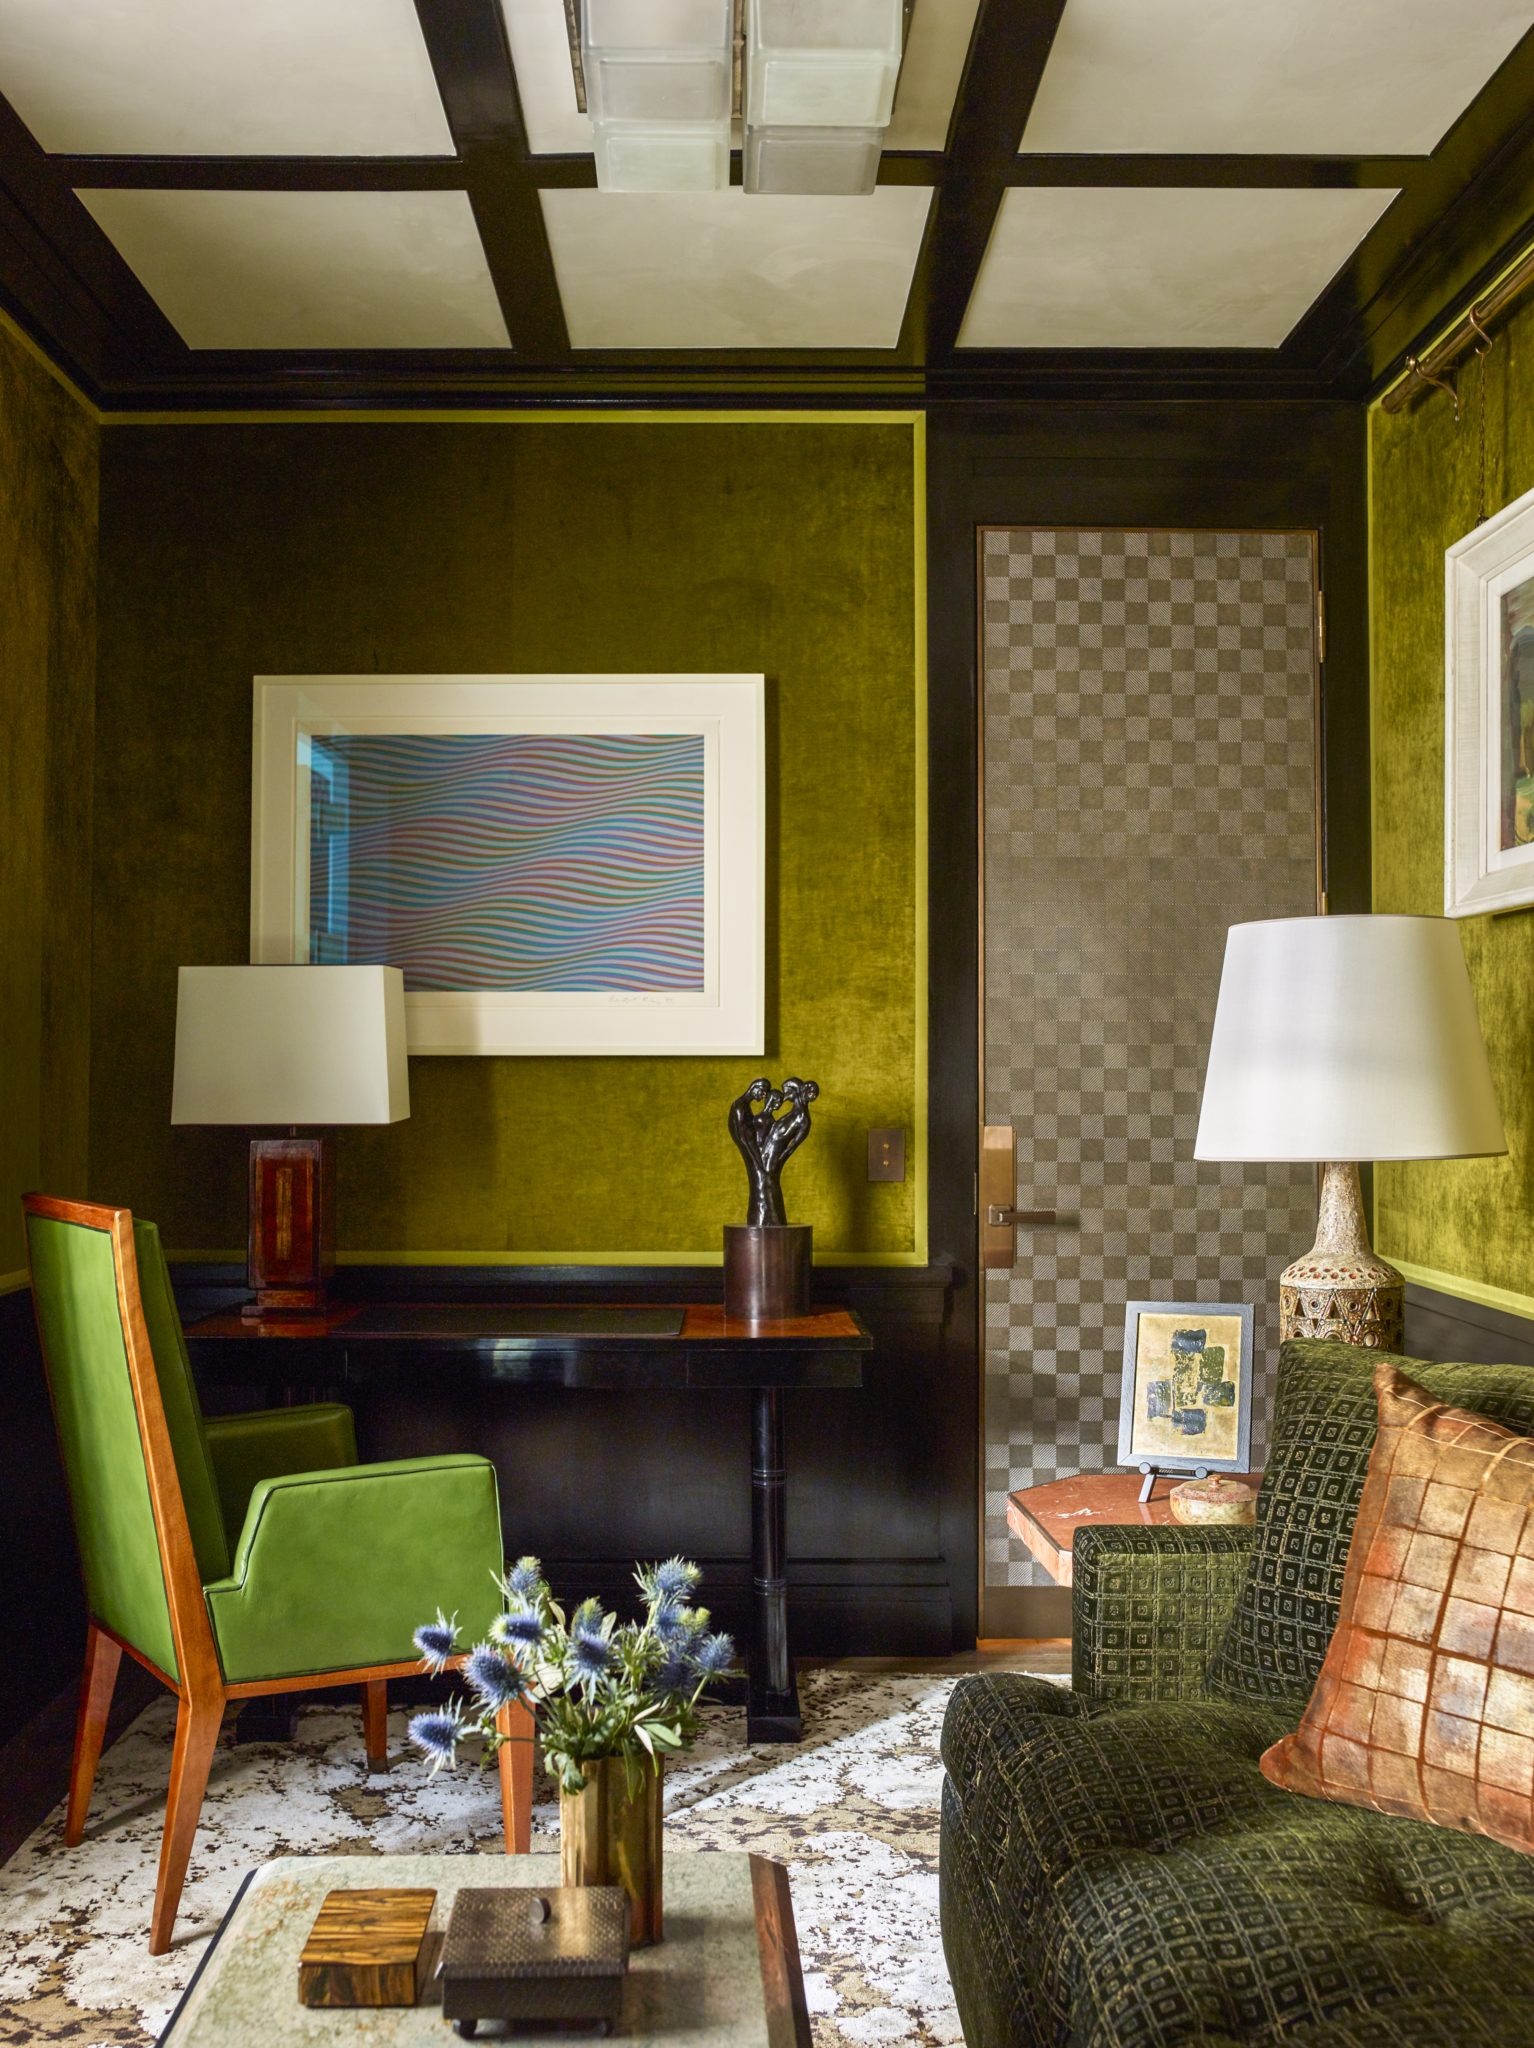 """For apied-à-terre in London's Mayfair neighborhood, Gambrel made certain thatnearly every surface hadpatina, texture, and what he terms, """"rugged polish."""" Thewalls in this small alcove roomare upholstered in mossy green velvet."""